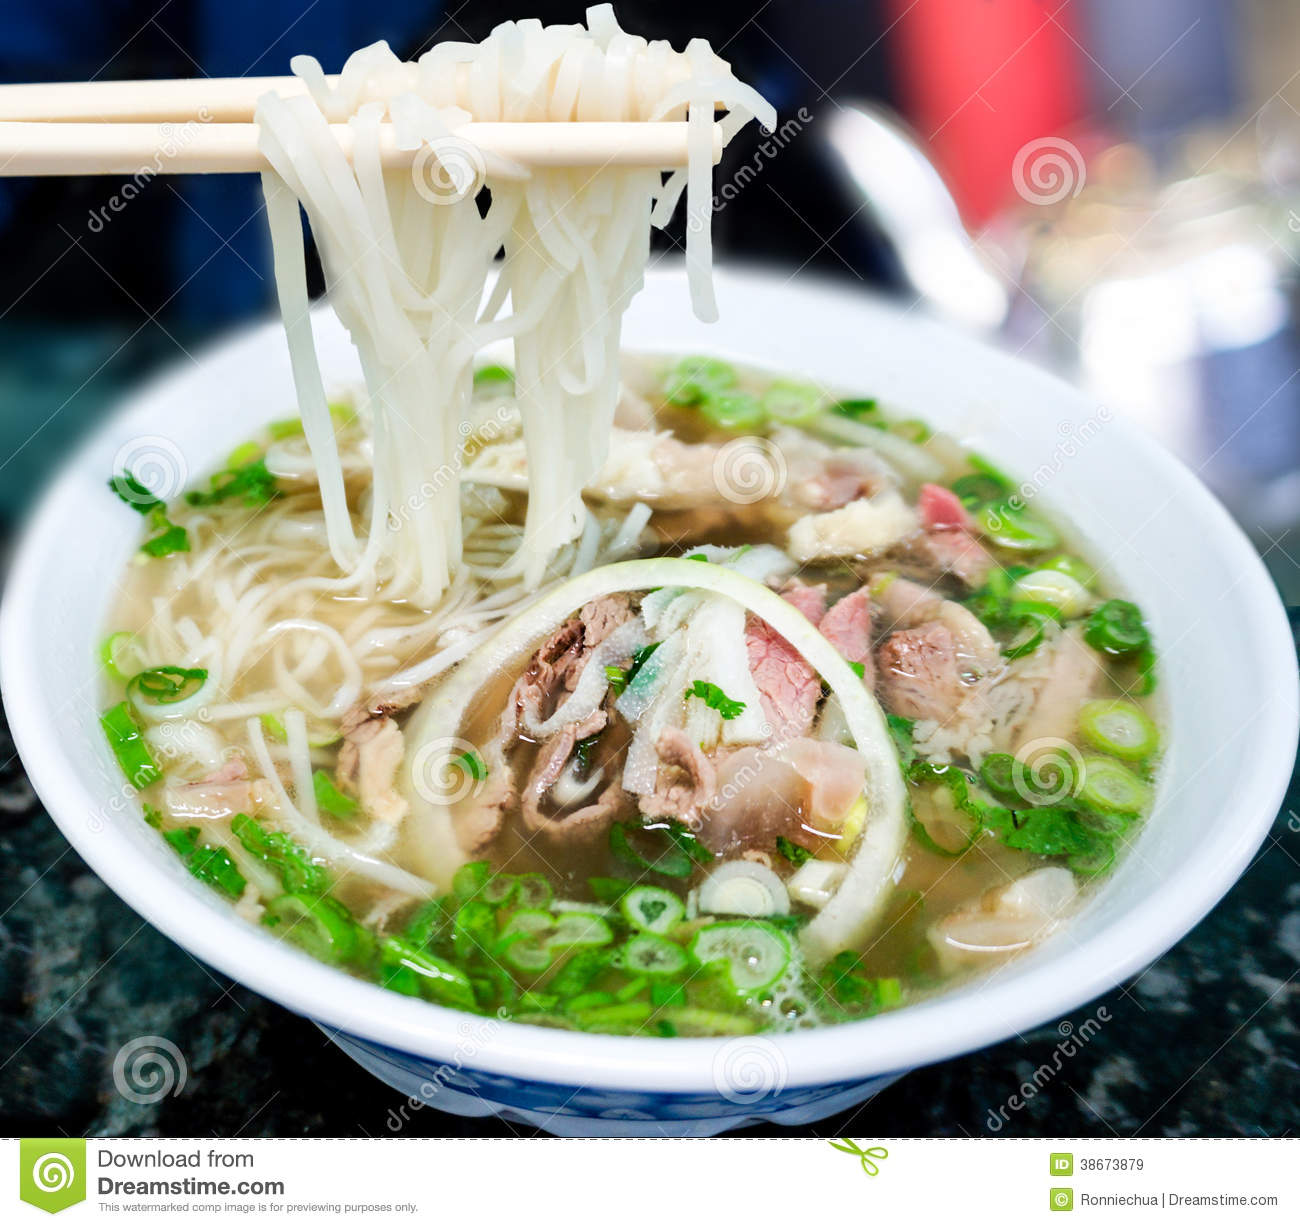 Traditional Vietnamese Pho Beef Noodle Soup Royalty Free Stock Images ...